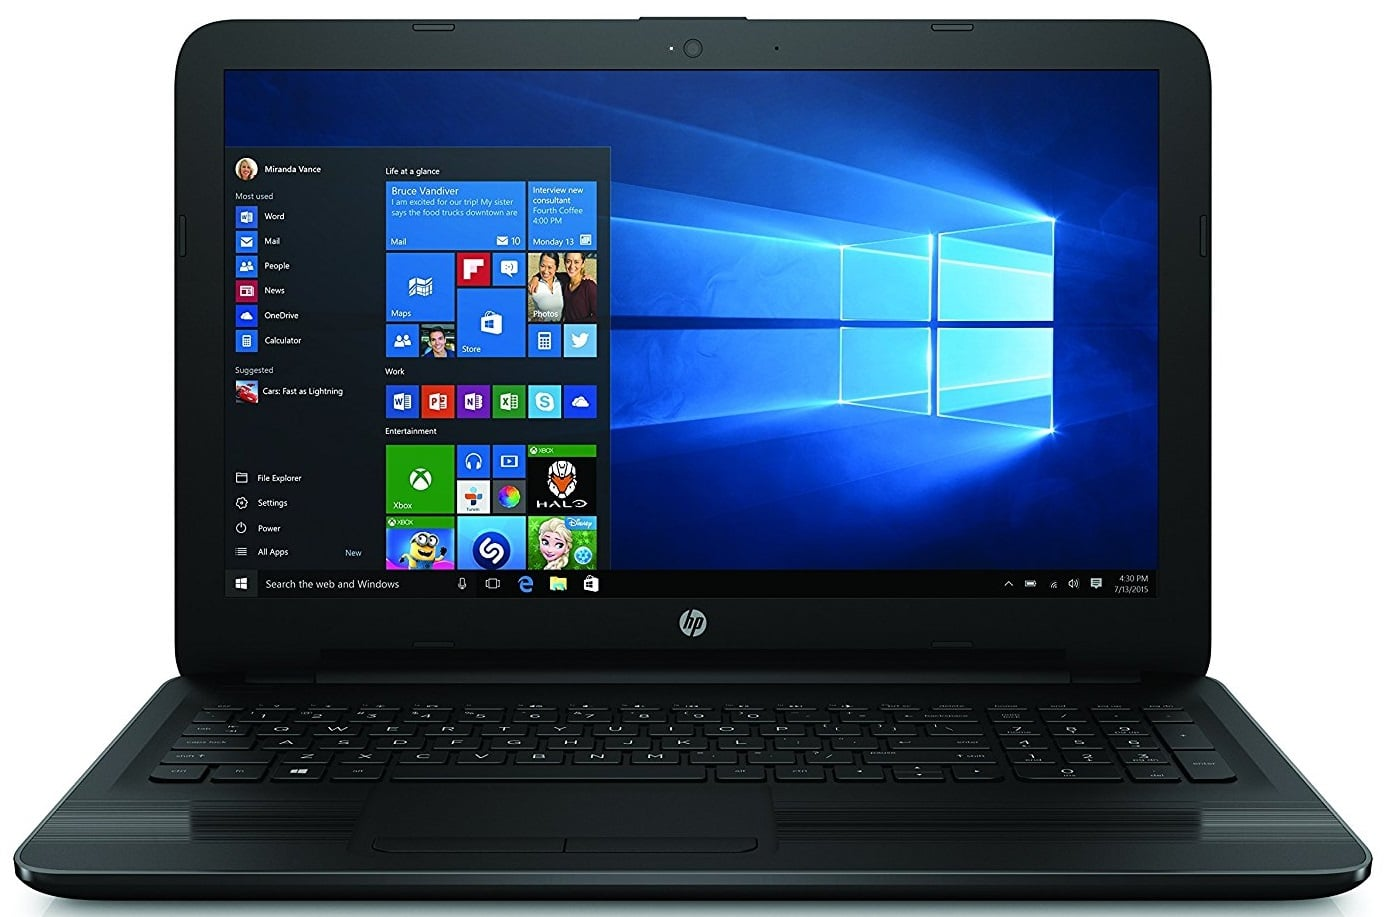 HP laptop under 400 pounds UK